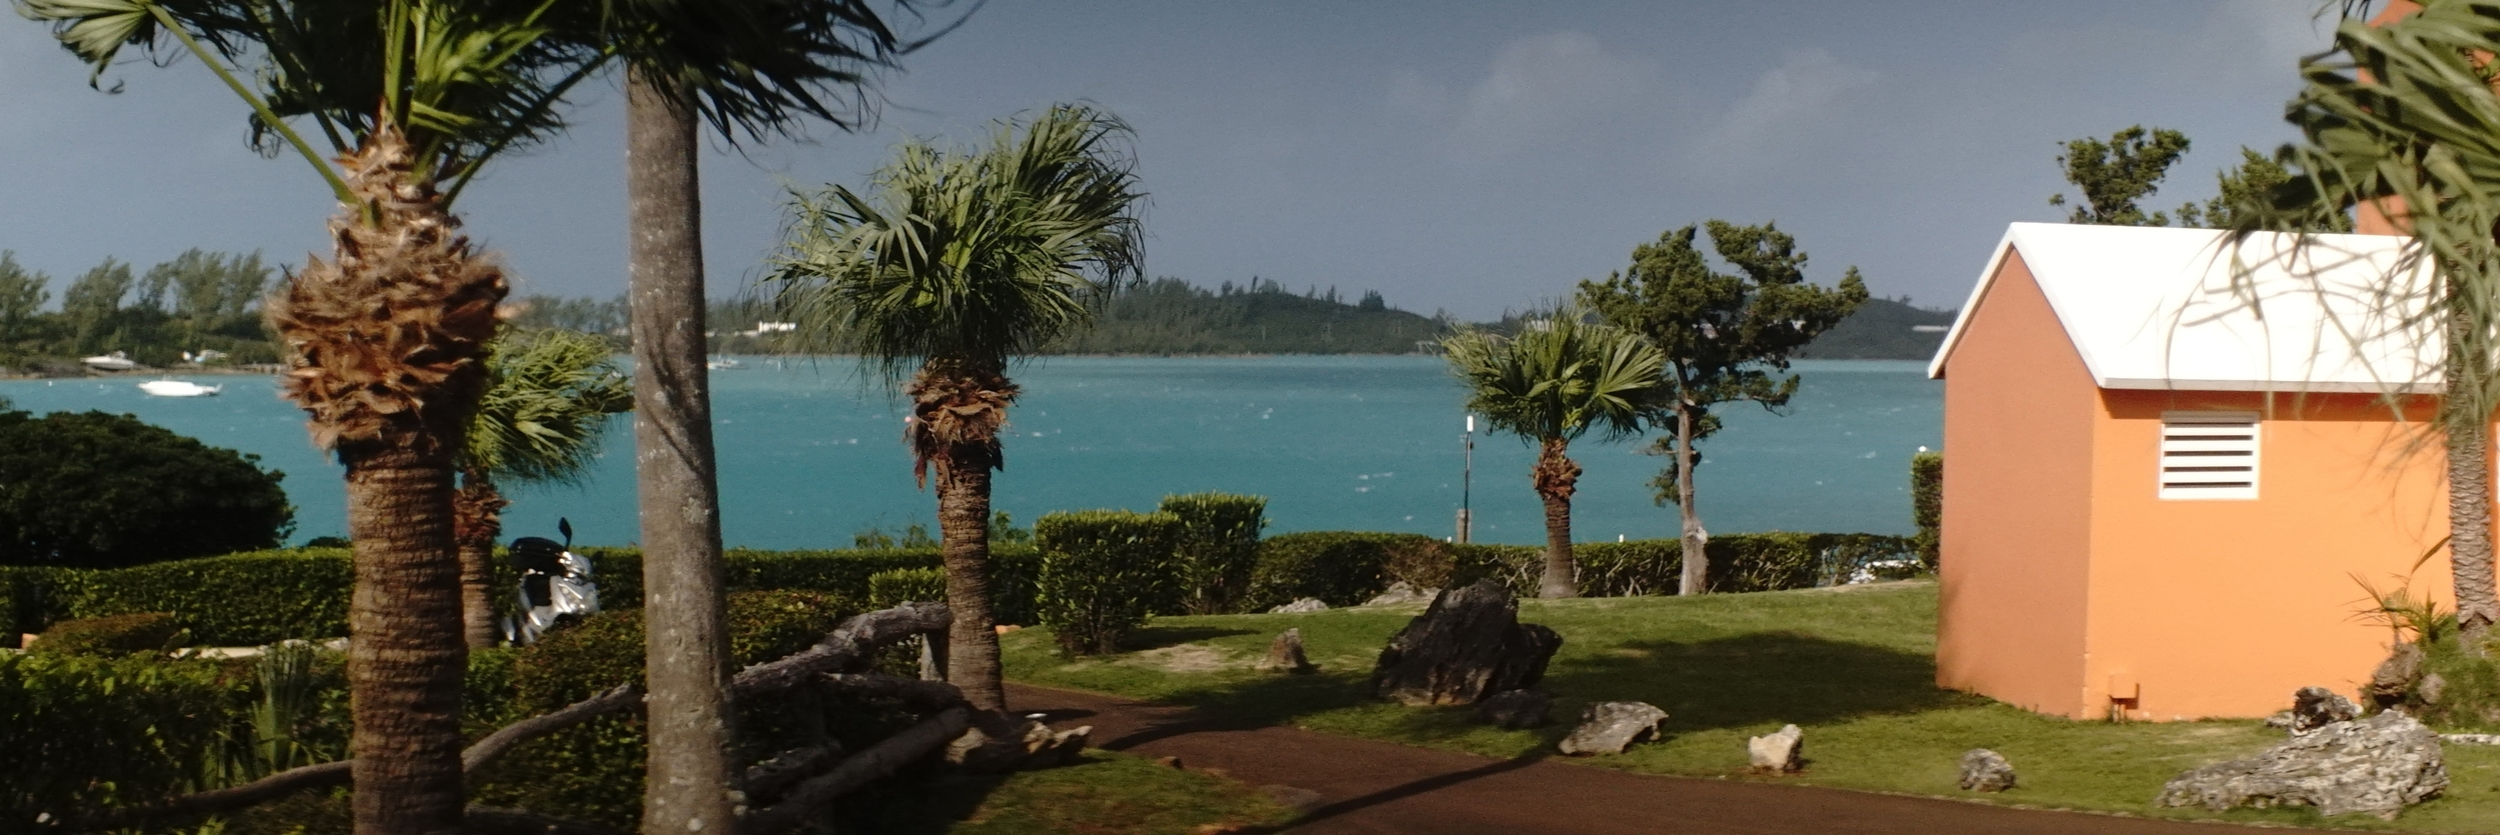 Grotto Bay Beach Resort - Bermuda. I am stopped down to an f5.6 here. You can see the tree in the frame left foreground is still out of focus, and I am probably a good twenty feet from it. | Lomo 50mm square front anamorphic | Keith Nickoson